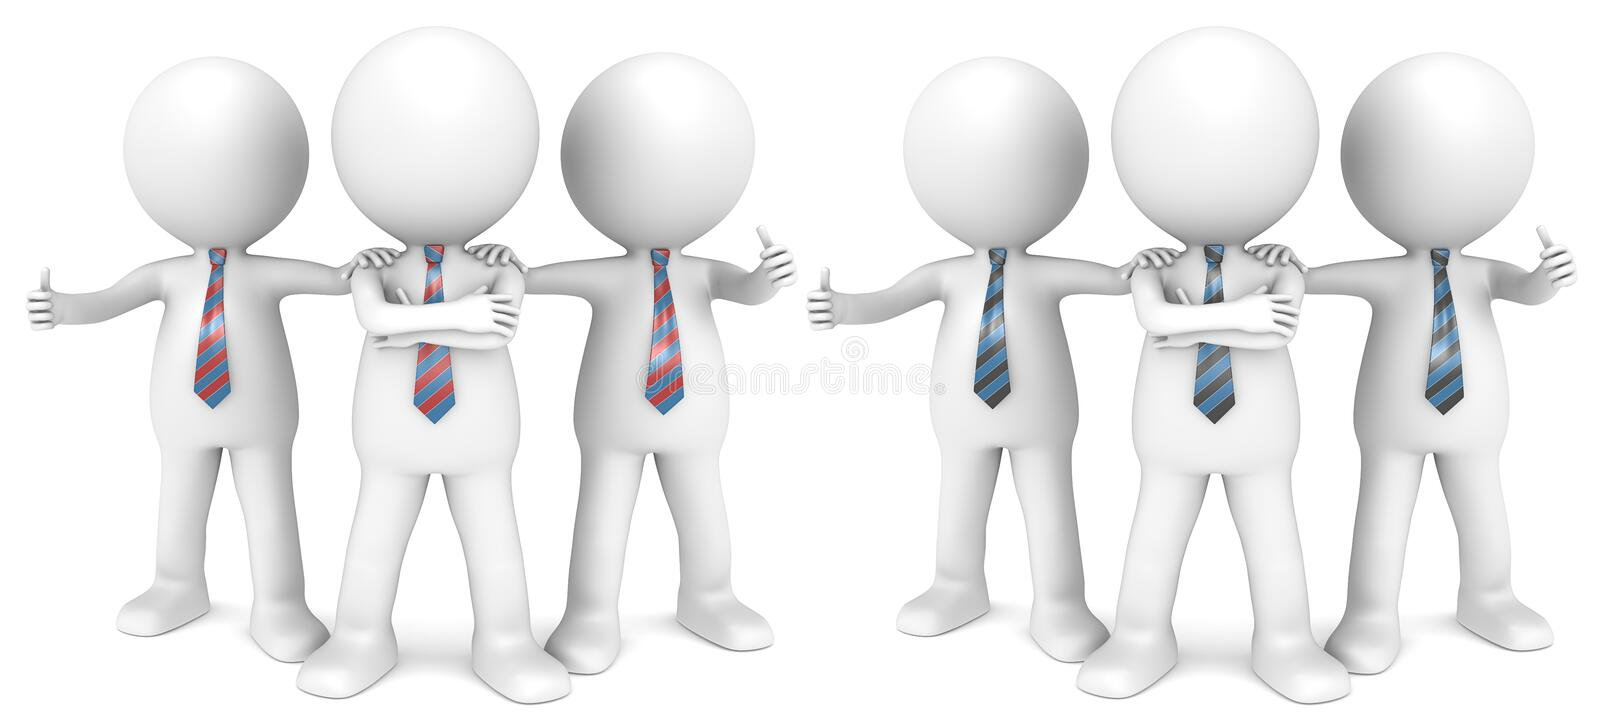 Download The Dream Team. stock illustration. Image of confident - 27874183